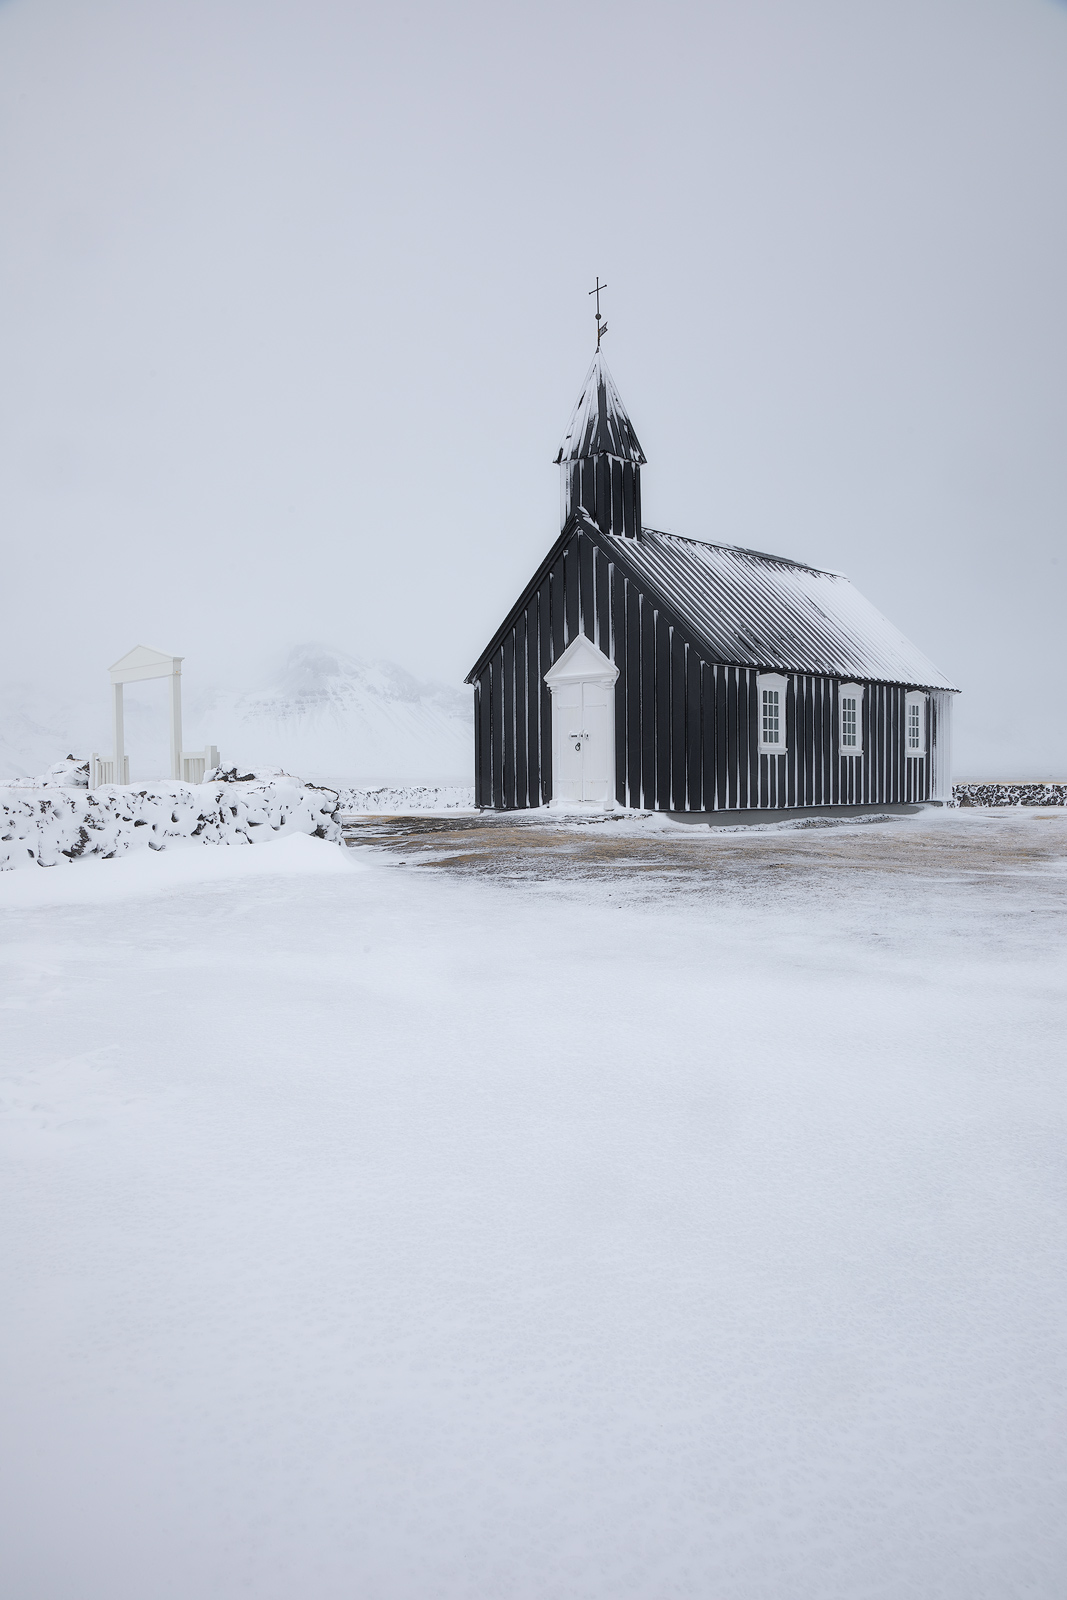 Iceland's famous black church after a heavy snowfall.